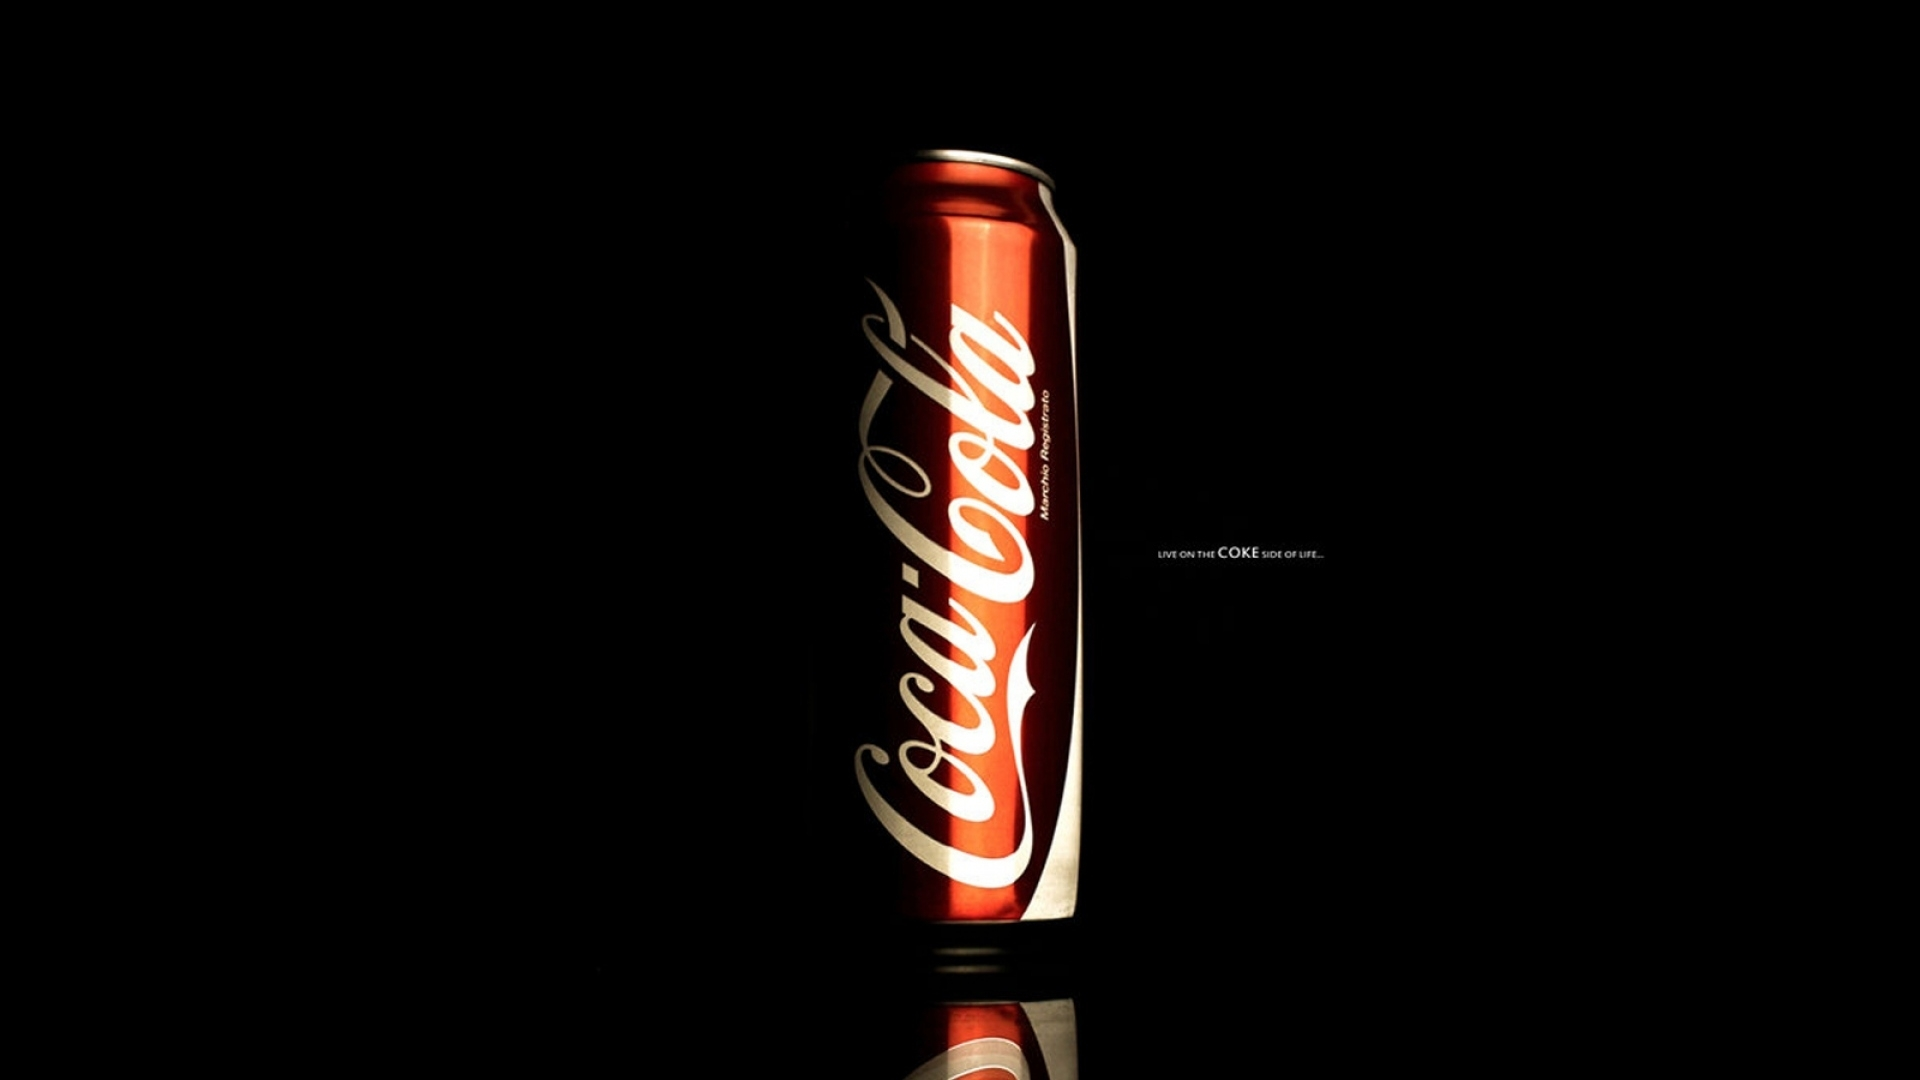 full hd 1080p coca-cola wallpapers hd, desktop backgrounds